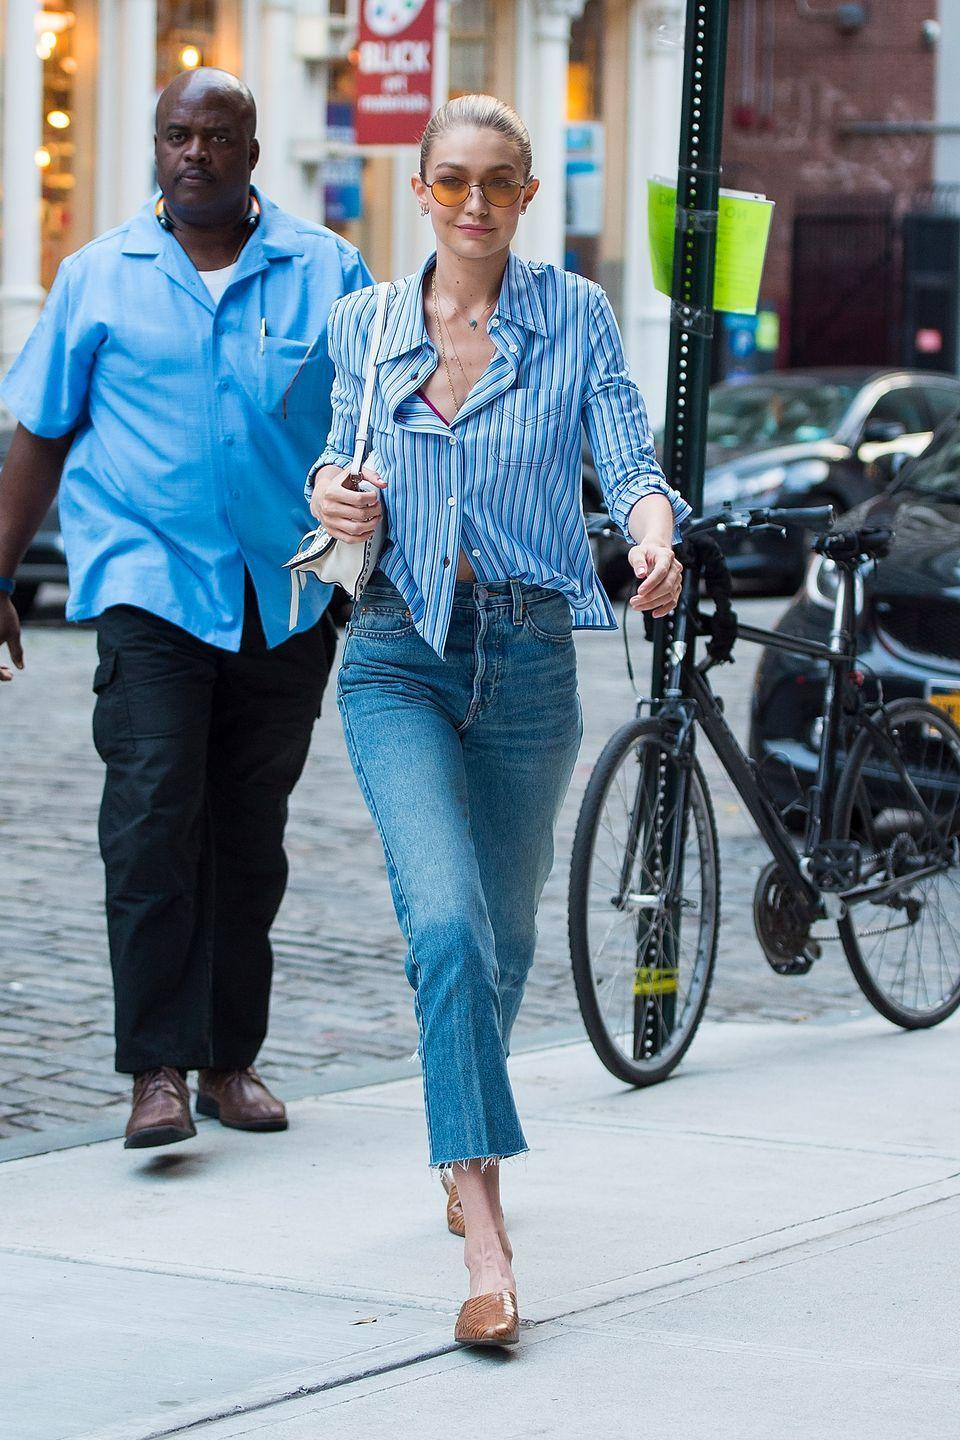 <p>Laid-back button-ups are Gigi's specialty, which is great for anyone trying to steal her style. Dupe this look with cropped jeans of your own – and if you don't have any, just chop those old flares you never wear. </p>